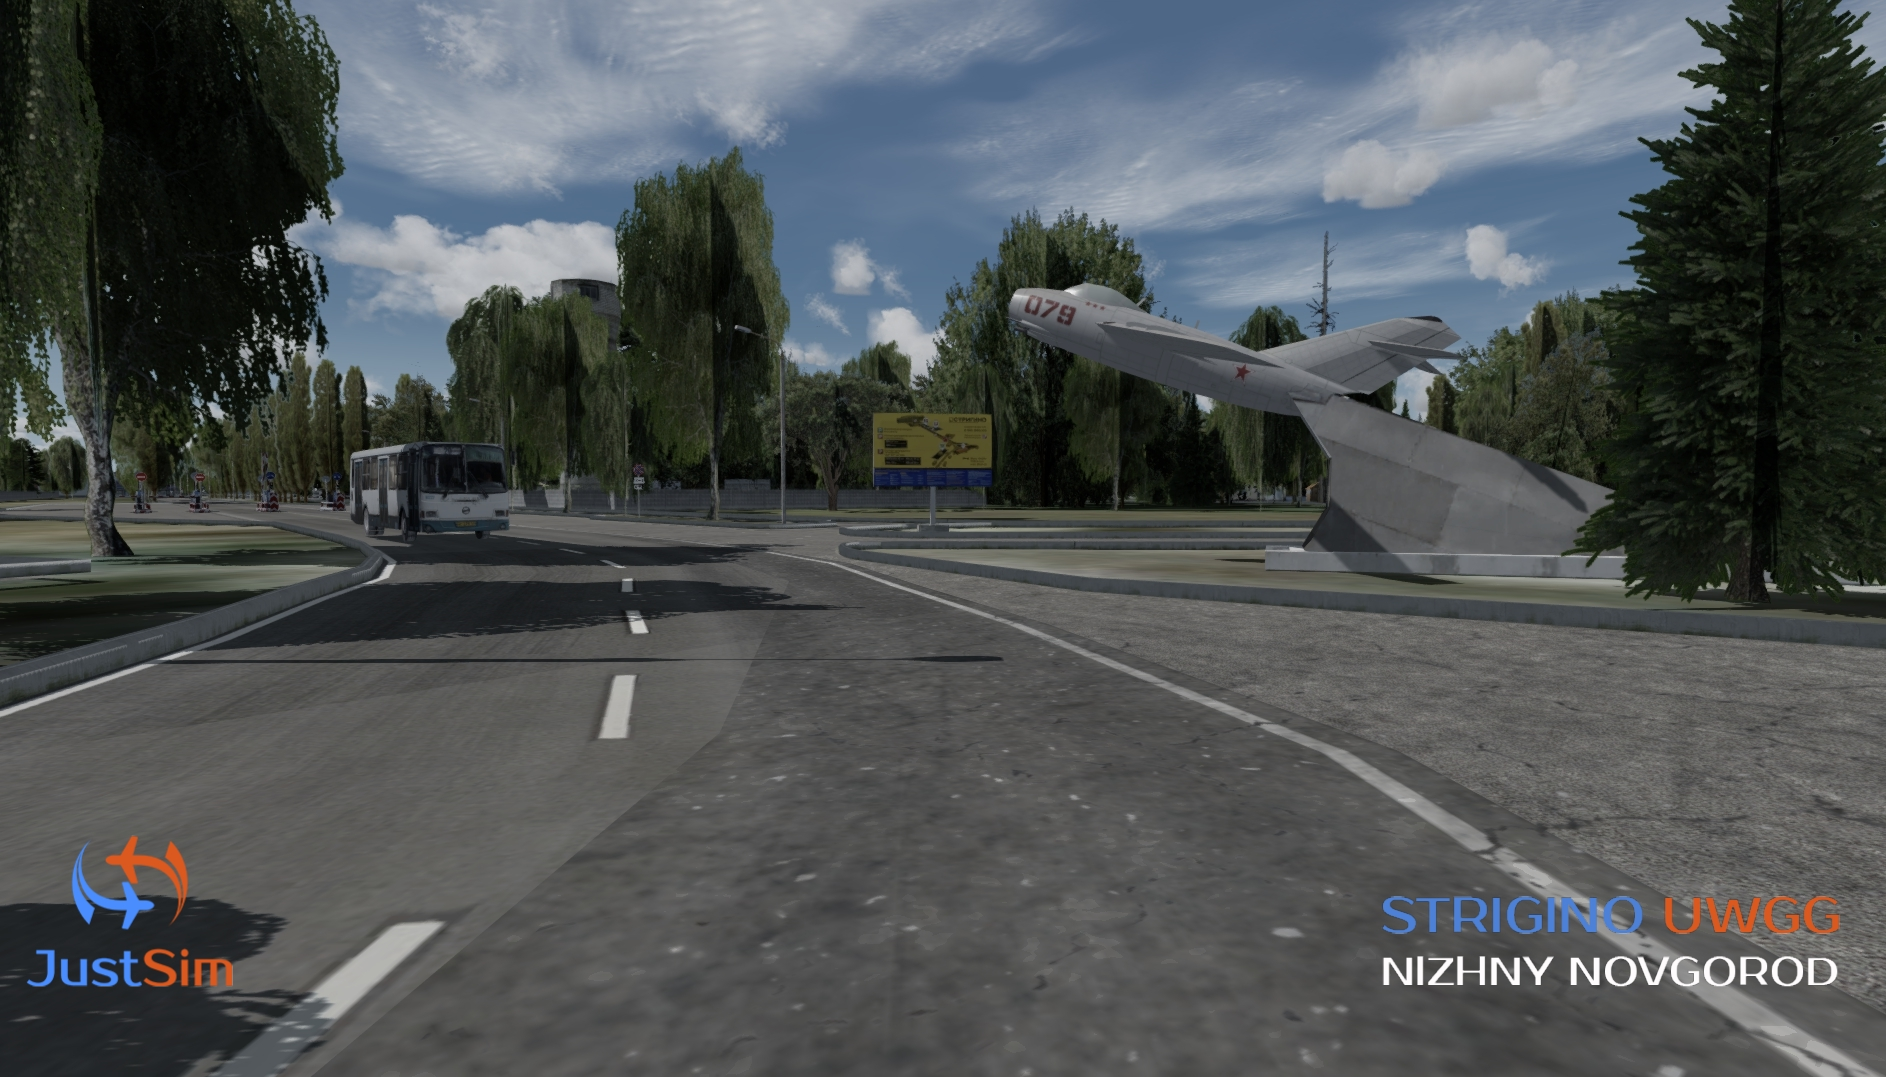 JUSTSIM - STRIGINO - NIZHNY NOVGOROD INTERNATIONAL AIRPORT FSX P3D